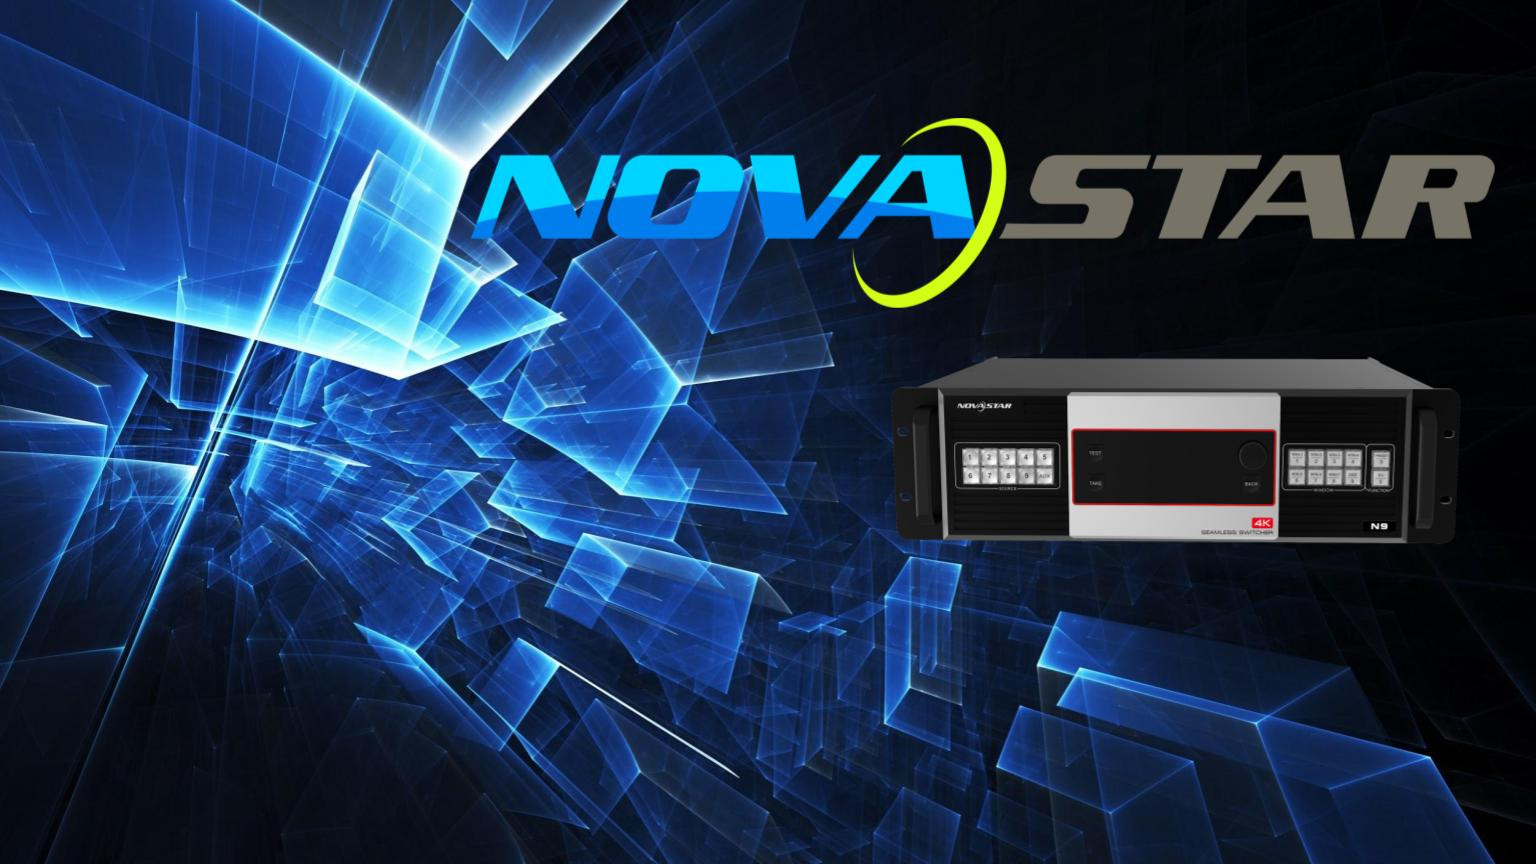 We are proud to be an offical distributor of all NovaStar processors and accessories.